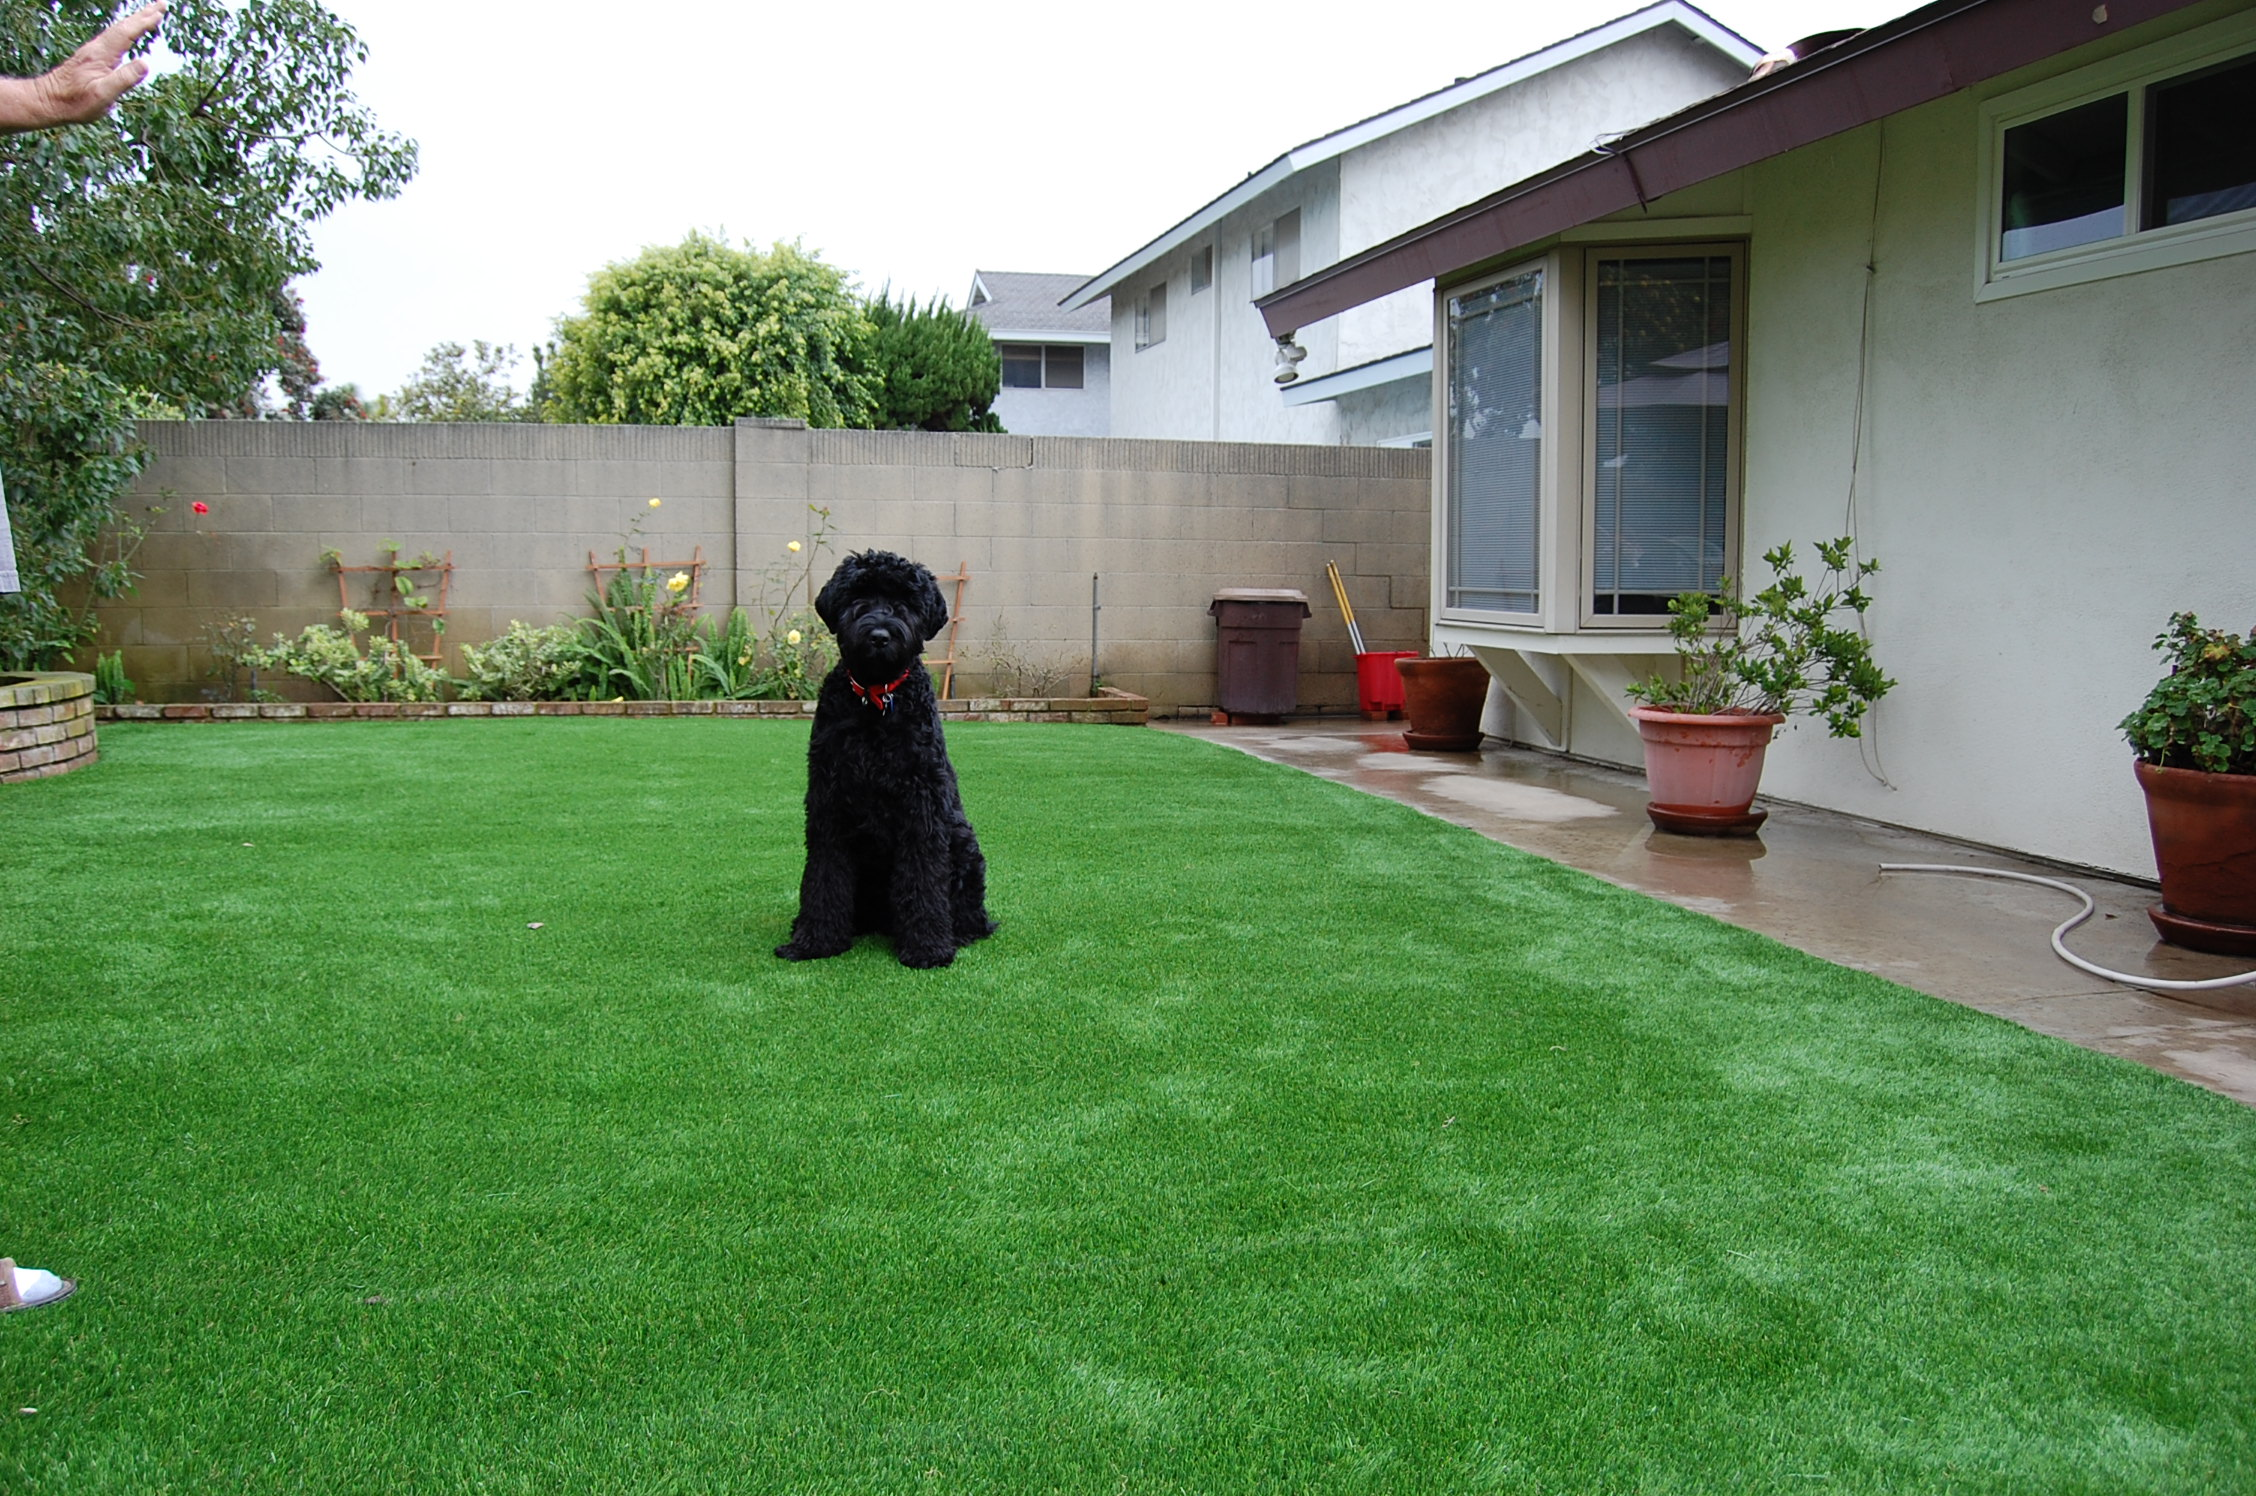 ▷🥇Best Synthetic Turf Installers in Escondido Terrace Mobile Home on mobile home windows, mobile home flooring, mobile home design, mobile home businesses, mobile home solar, mobile home movers, mobile home components, mobile home marketing, mobile home insurance, mobile home contractors, mobile home services, mobile home construction, mobile home sized furniture, mobile home utilities, mobile home heating, mobile home maintenance, mobile home tools, mobile home manufactures, mobile home installation, mobile home inspections,